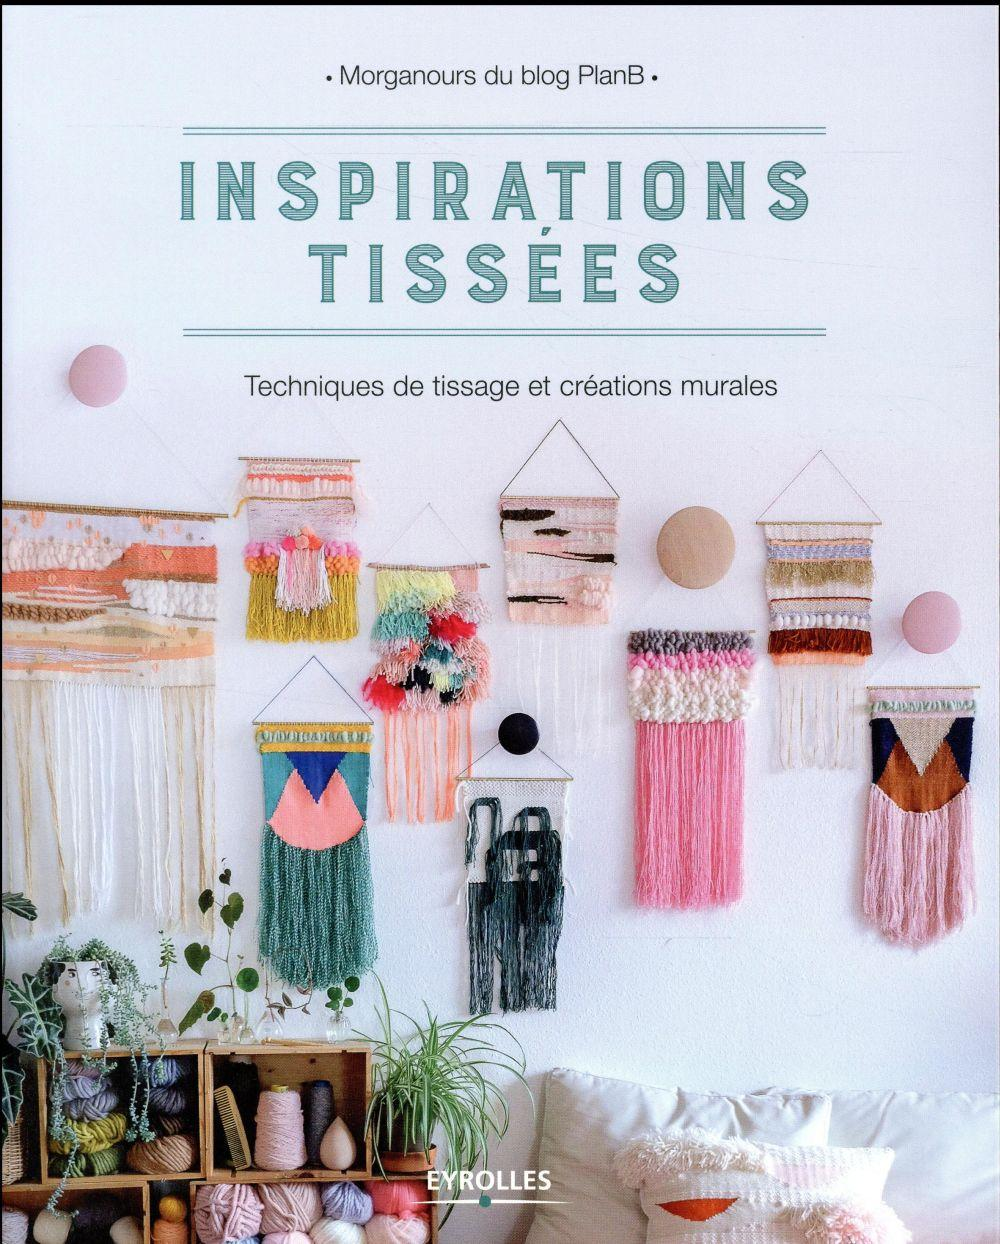 Inspirations tissees  - Morganours